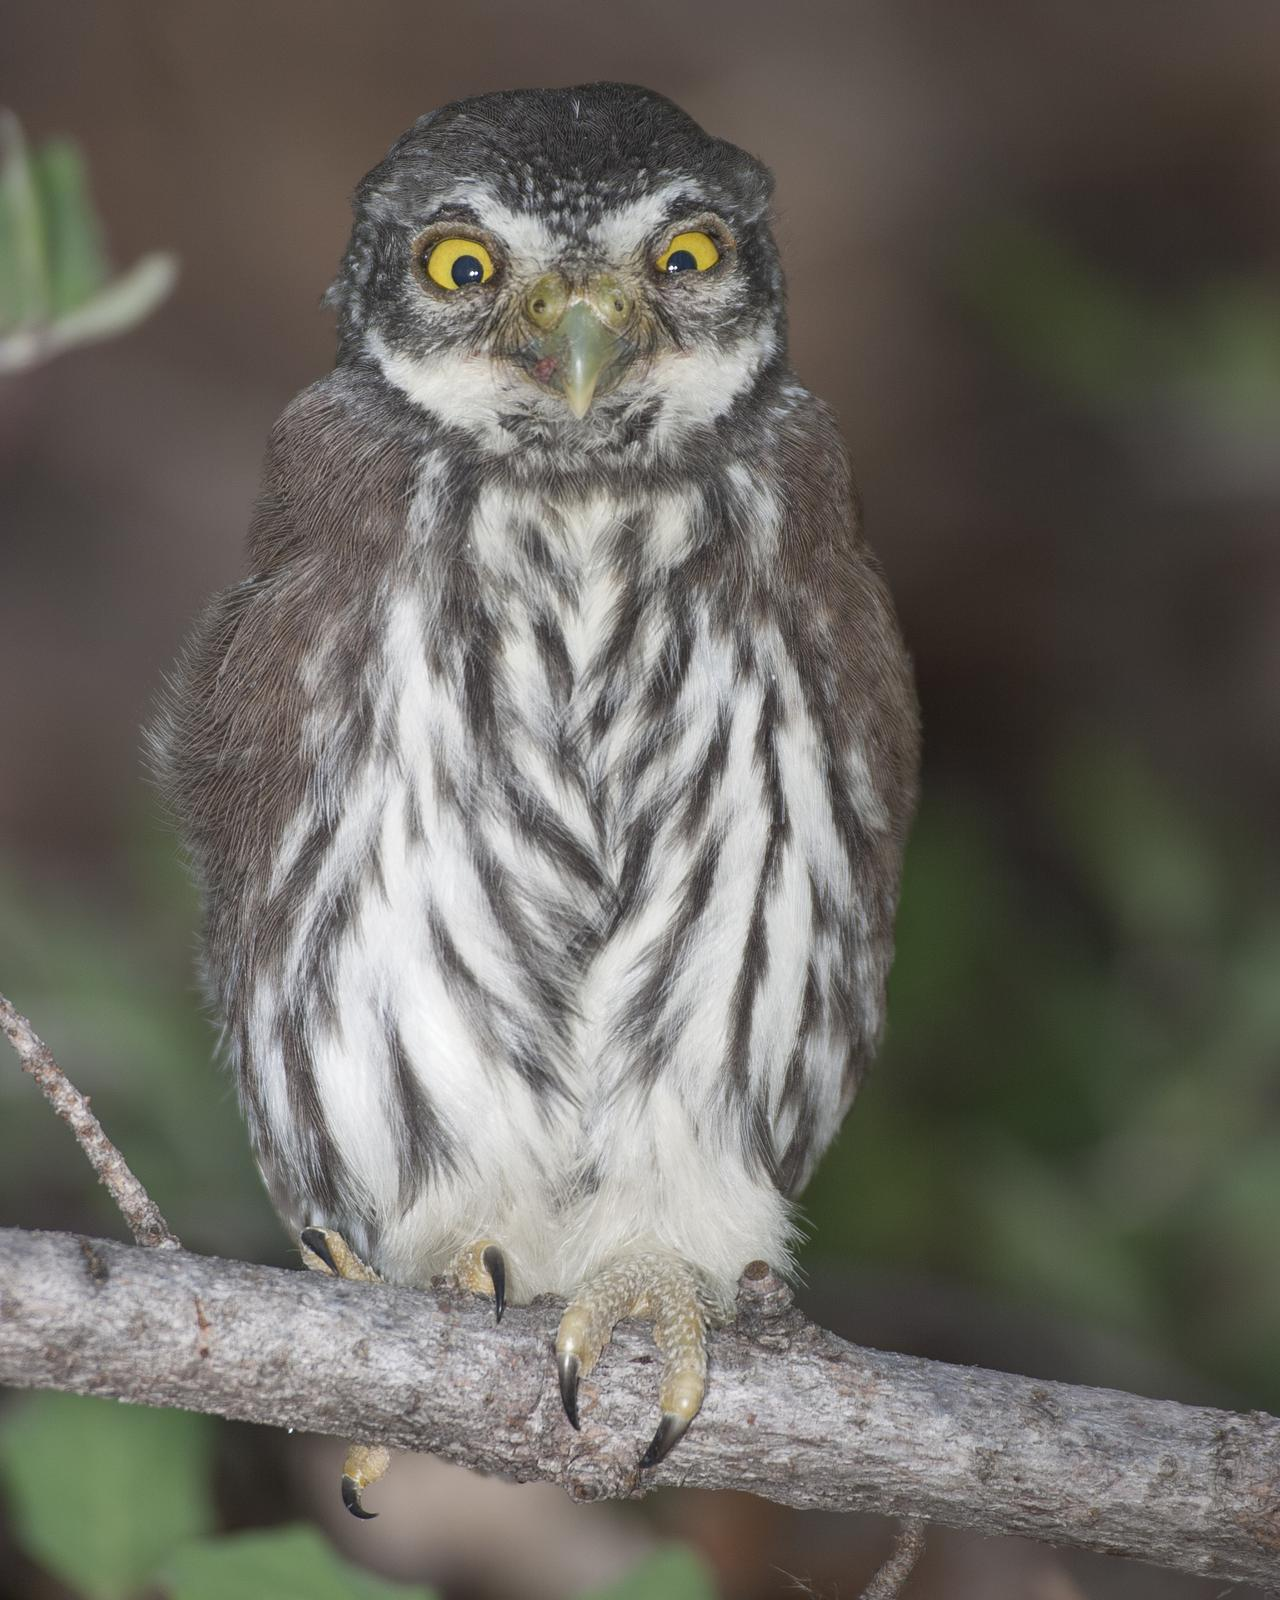 Northern Pygmy-Owl Photo by Jeff Moore